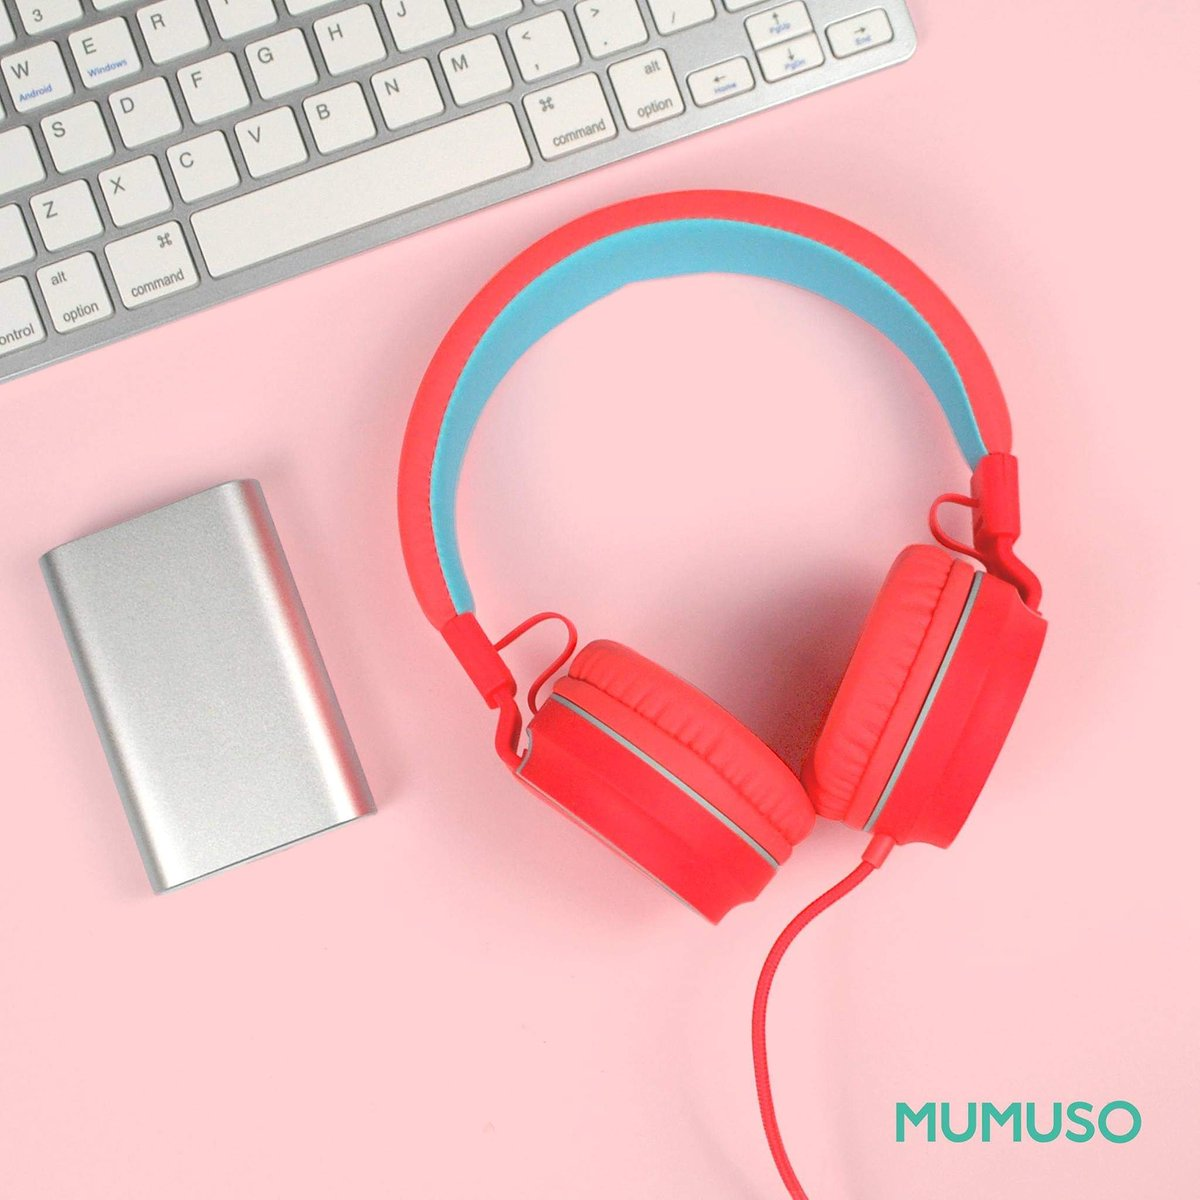 Jump start your day by listening to your favorite song! 😄🎧🎶  #Mumuso